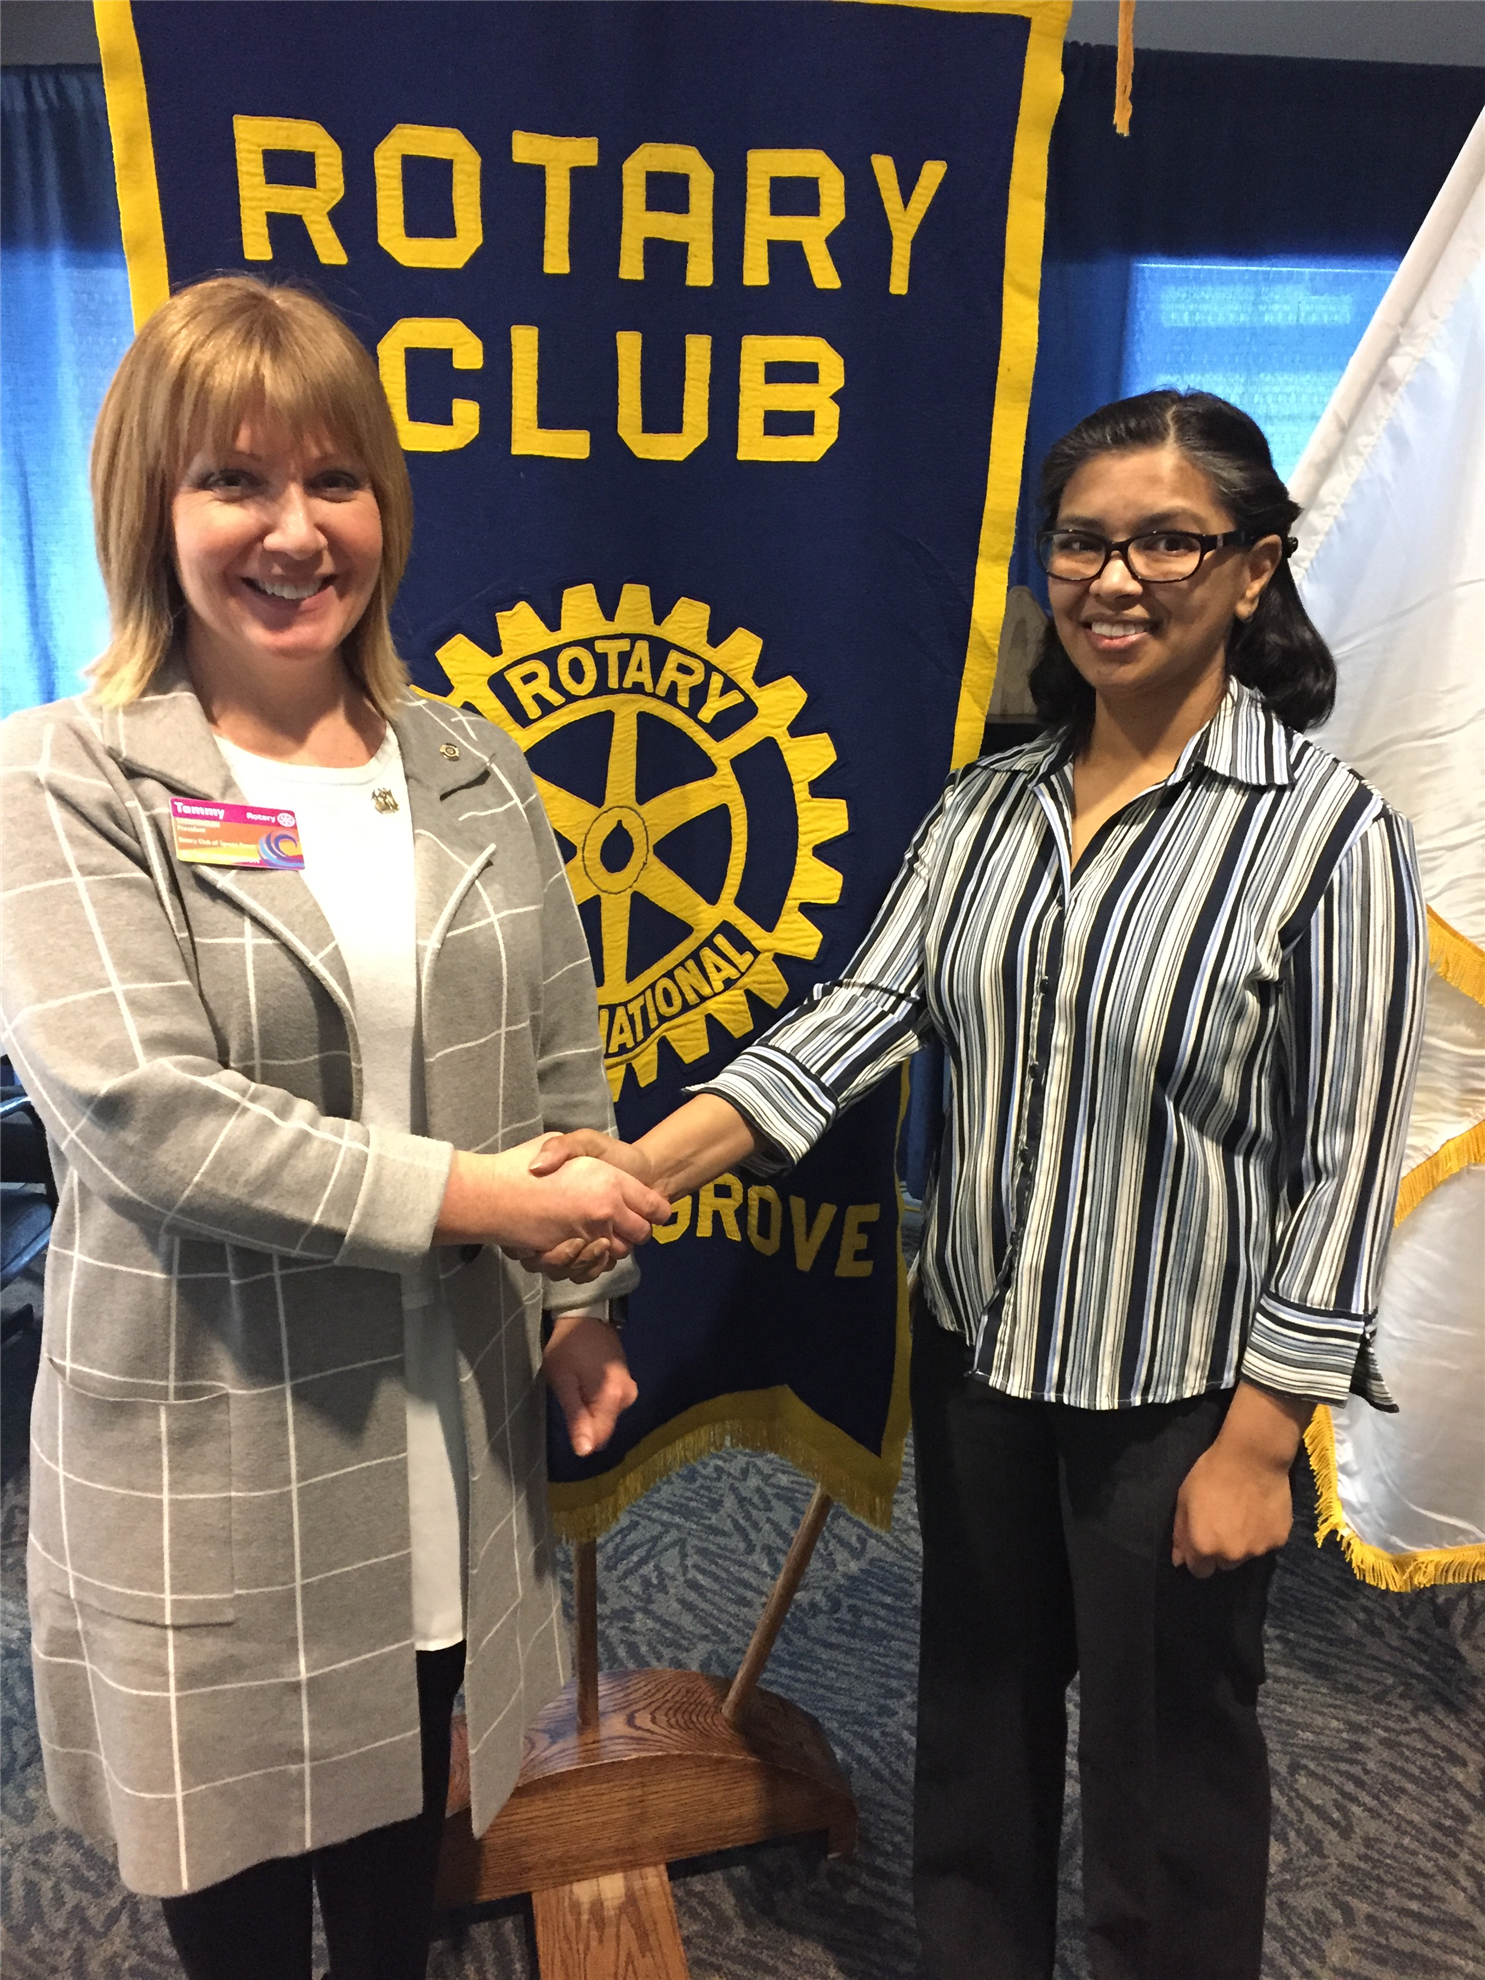 Stories | Rotary Club of Spruce Grove